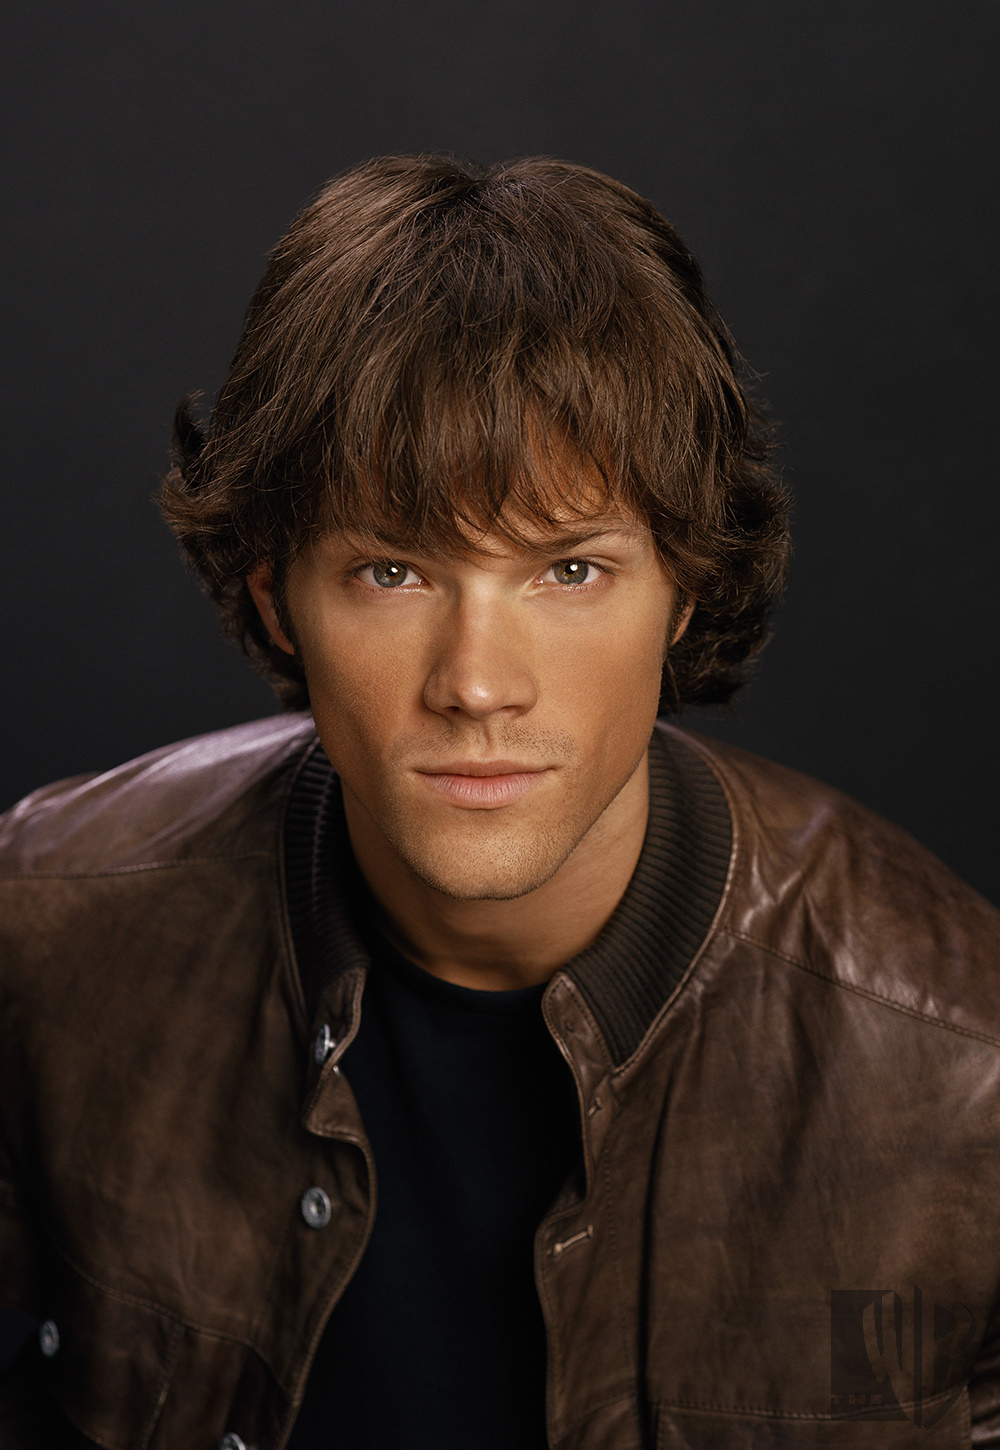 Sam Supernatural Photo 13987692 Fanpop